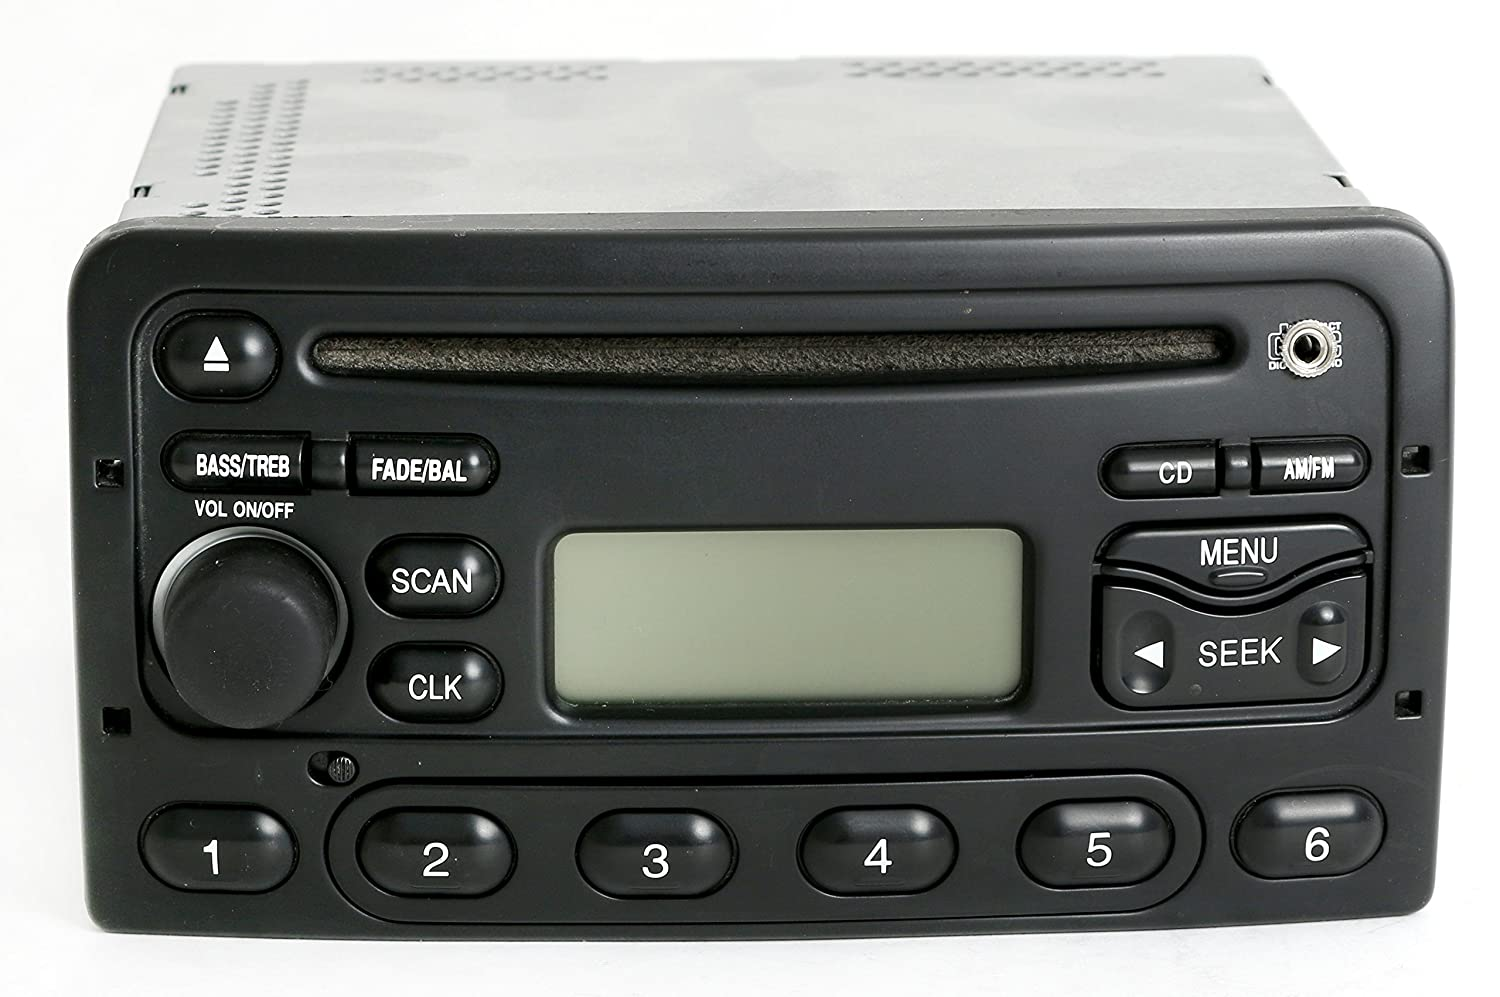 amazon com ford focus 2001 2004 radio am fm cd player upgraded w ford aux input harness Ford Aux Input Wiring Harness amazon com ford focus 2001 2004 radio am fm cd player upgraded w aux input ys4f 18c838 da cell phones & accessories